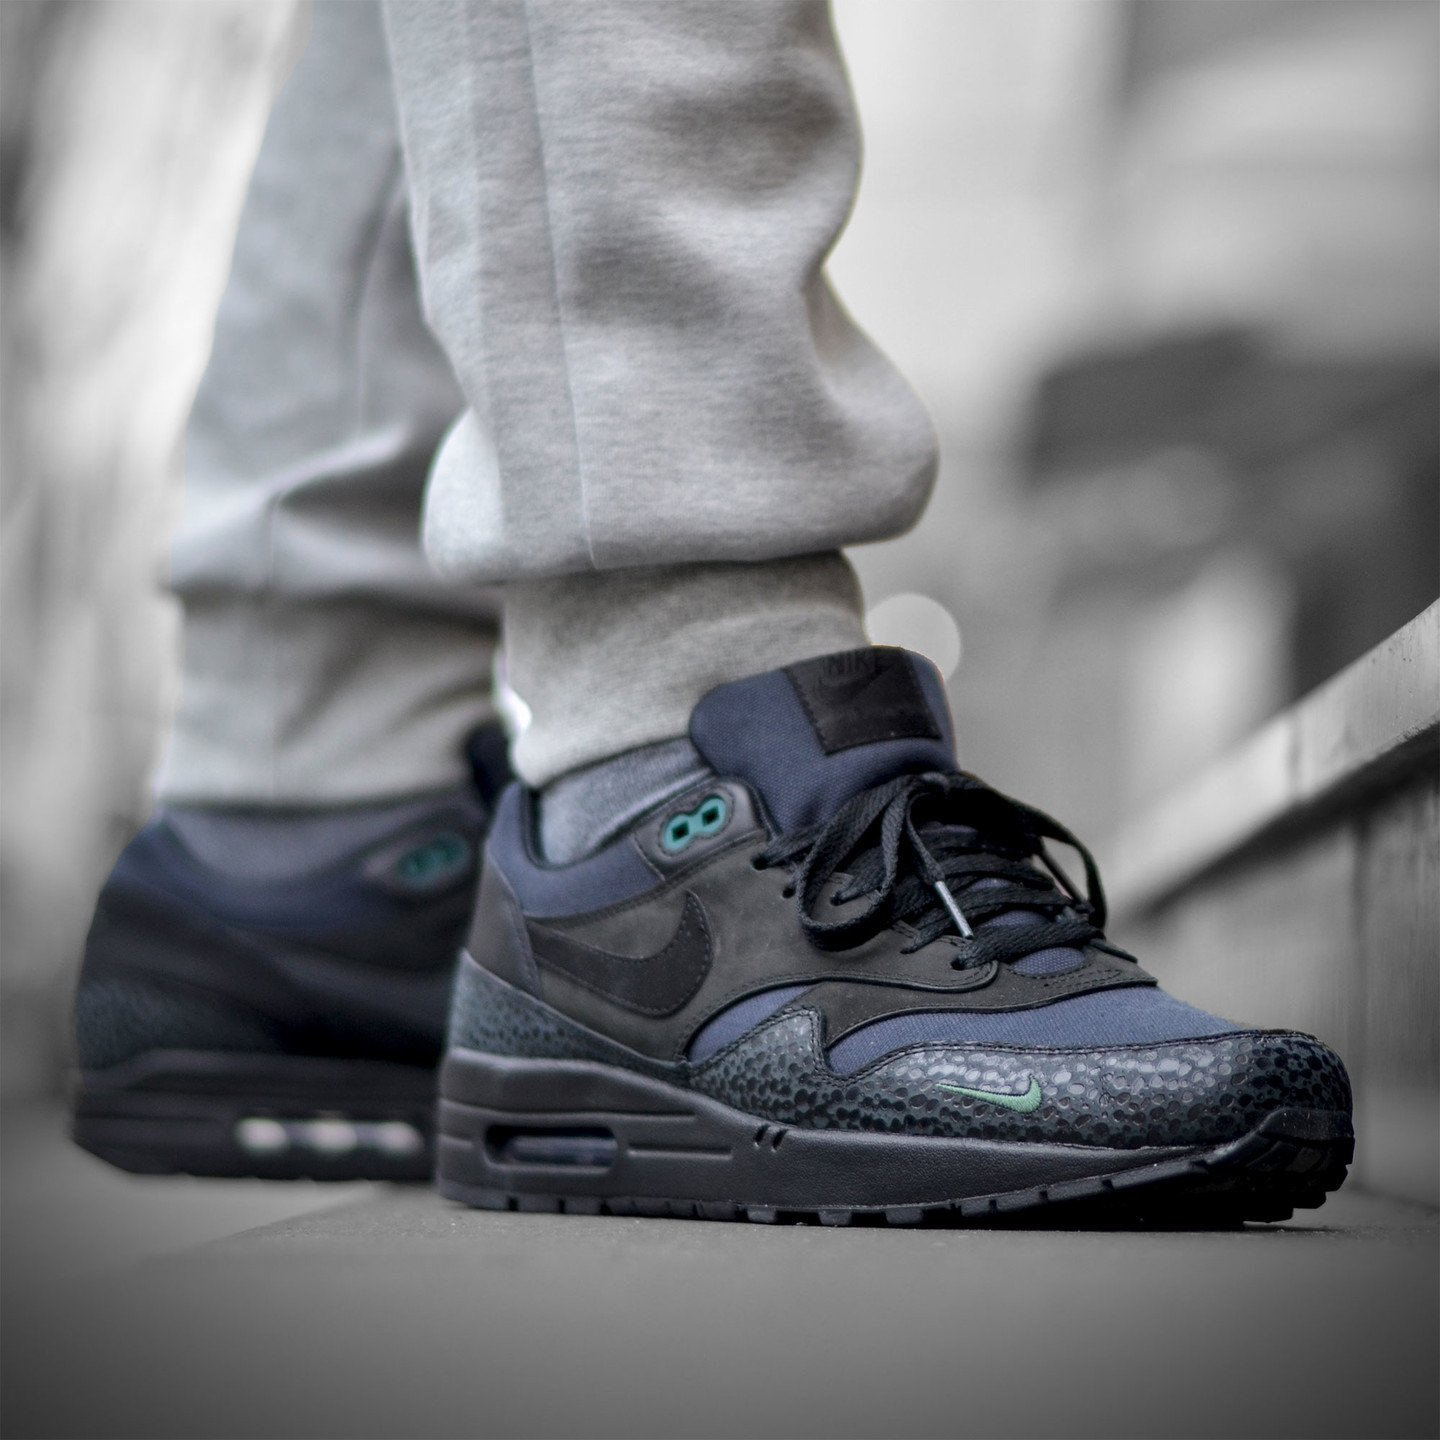 Nike Air Max 1 Premium 'Bonsai Safari' Black / Black / Bonsai 512033-030-46